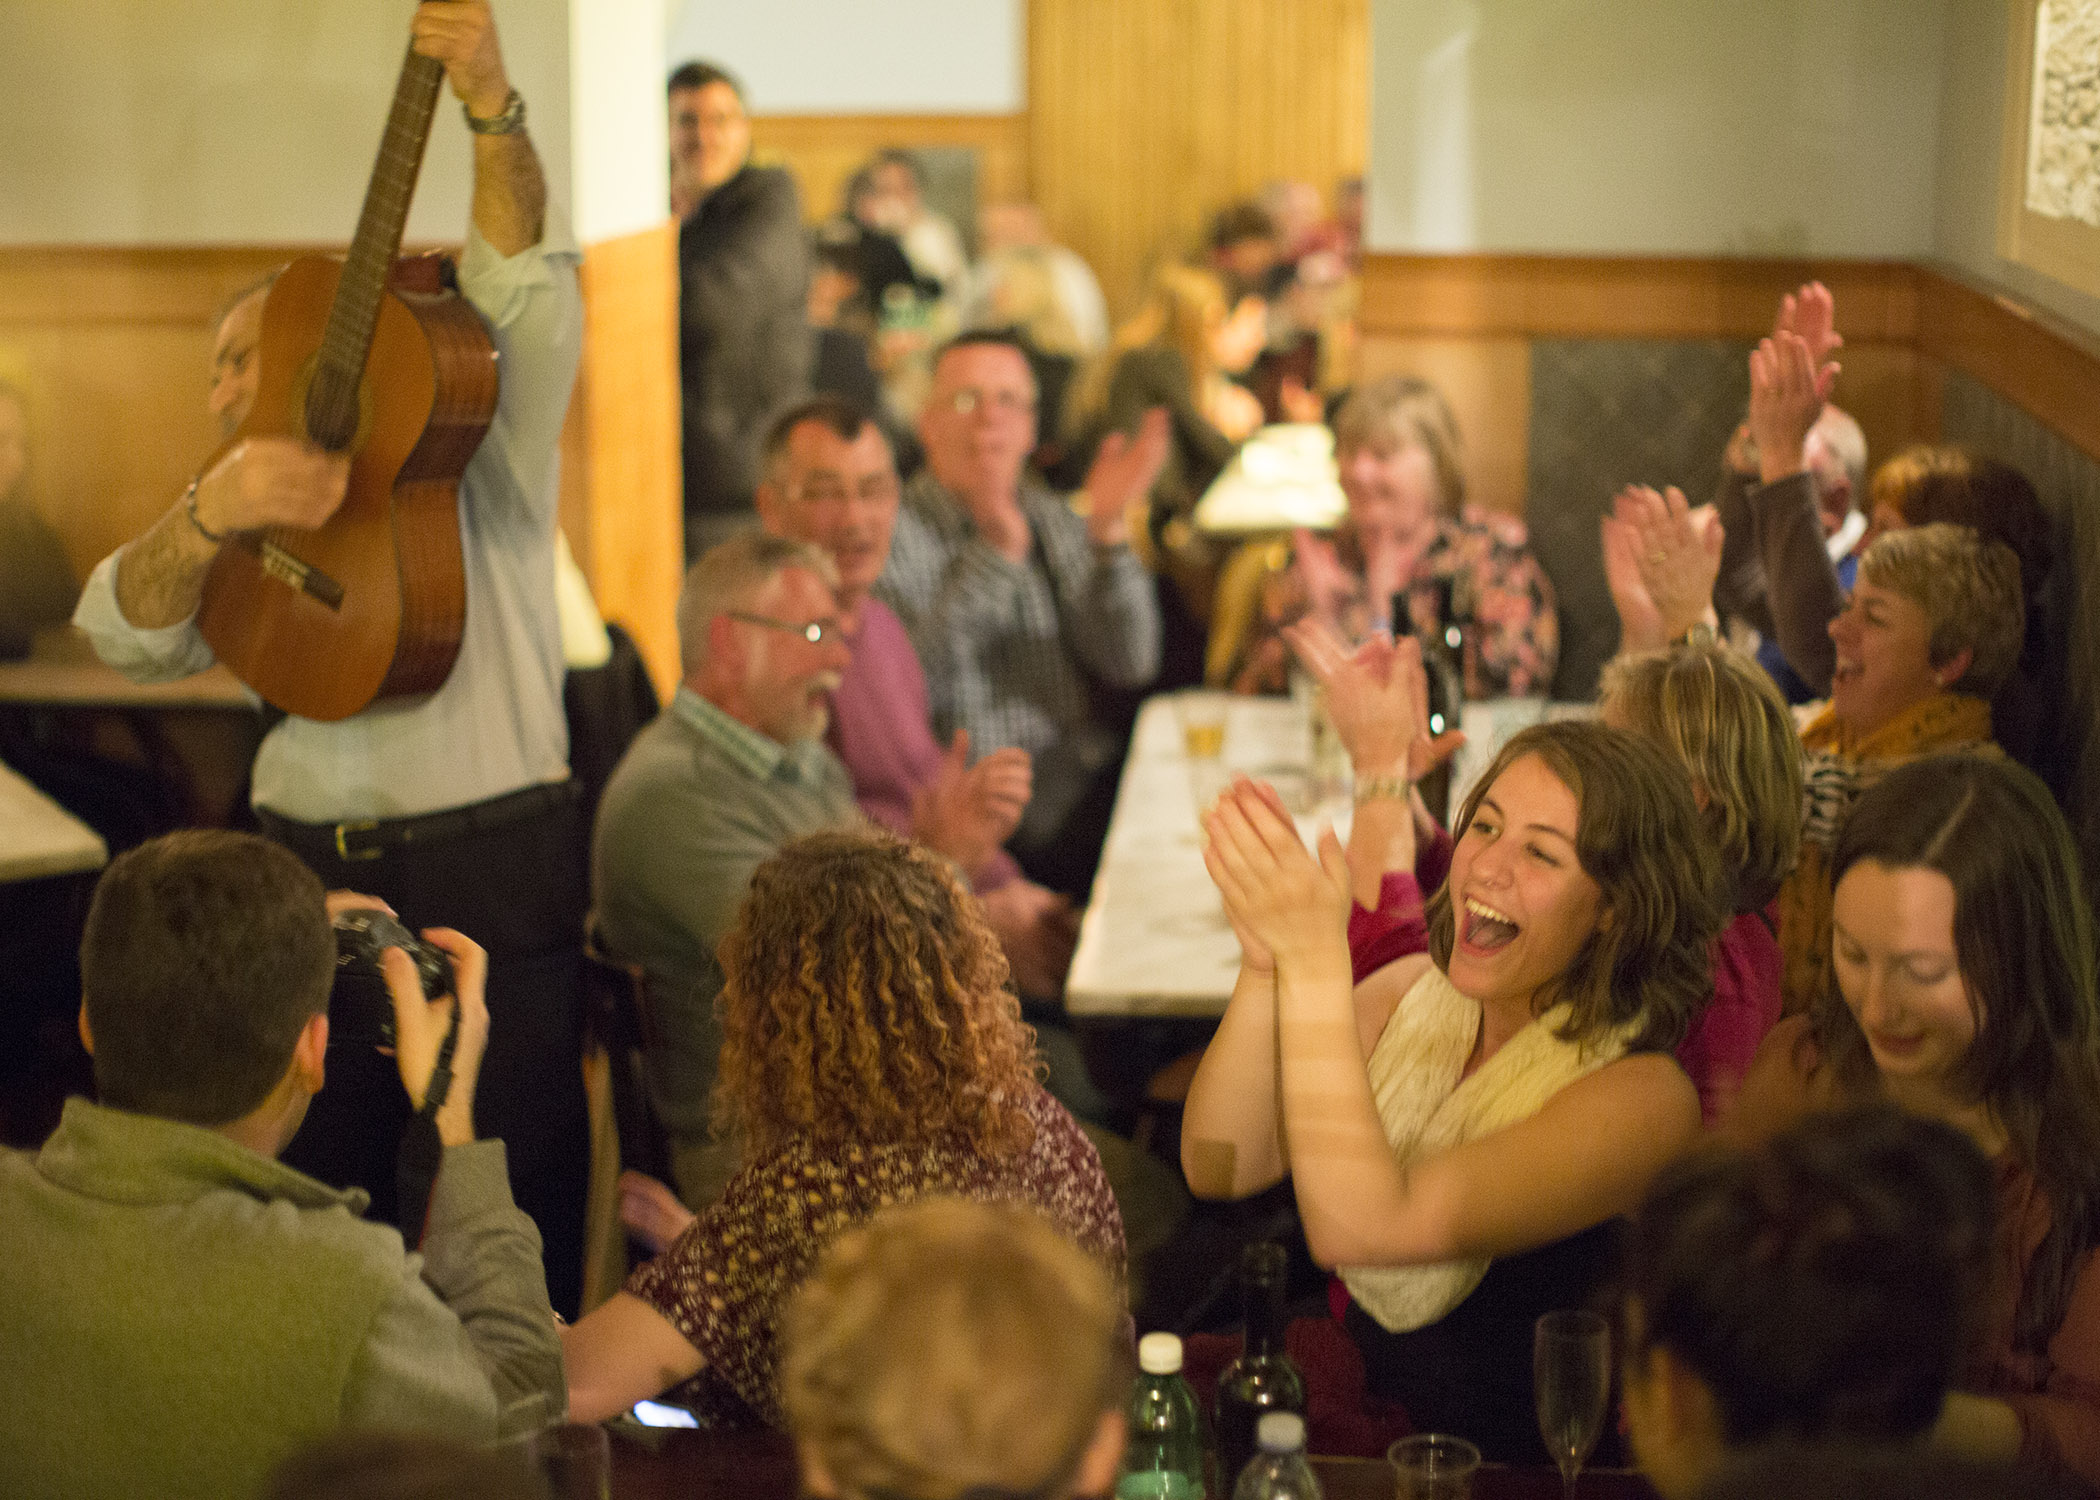 Students interacting with locals and enjoying a musical performer in a neighborhood restaurant in Naples, Italy (photo: Canisius College)